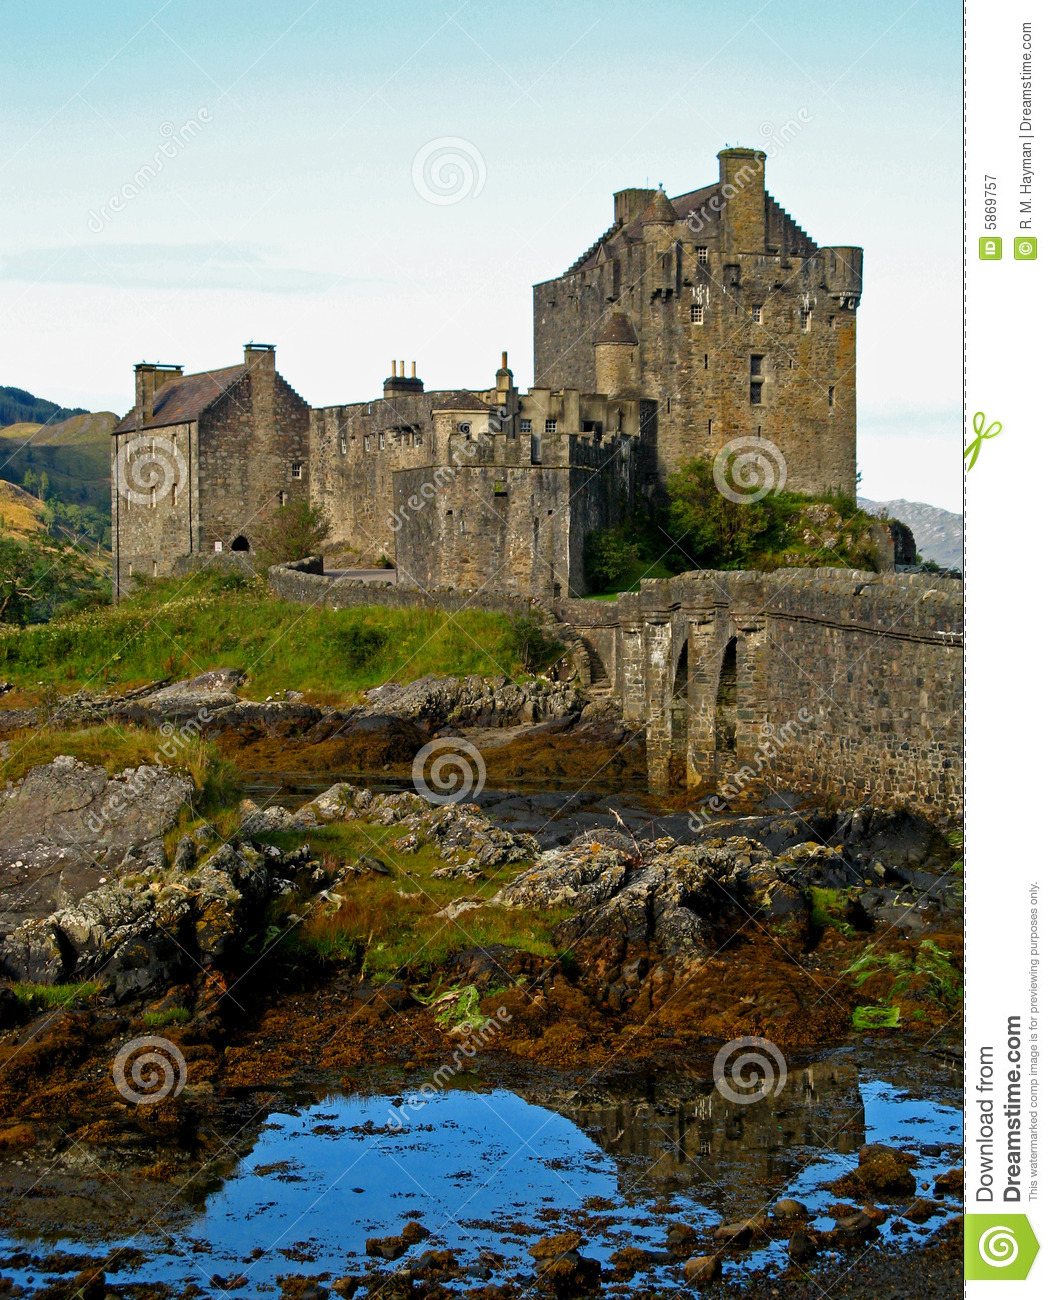 Scottish highland castle 08 royalty free stock photography for Scottish highland castle house plans